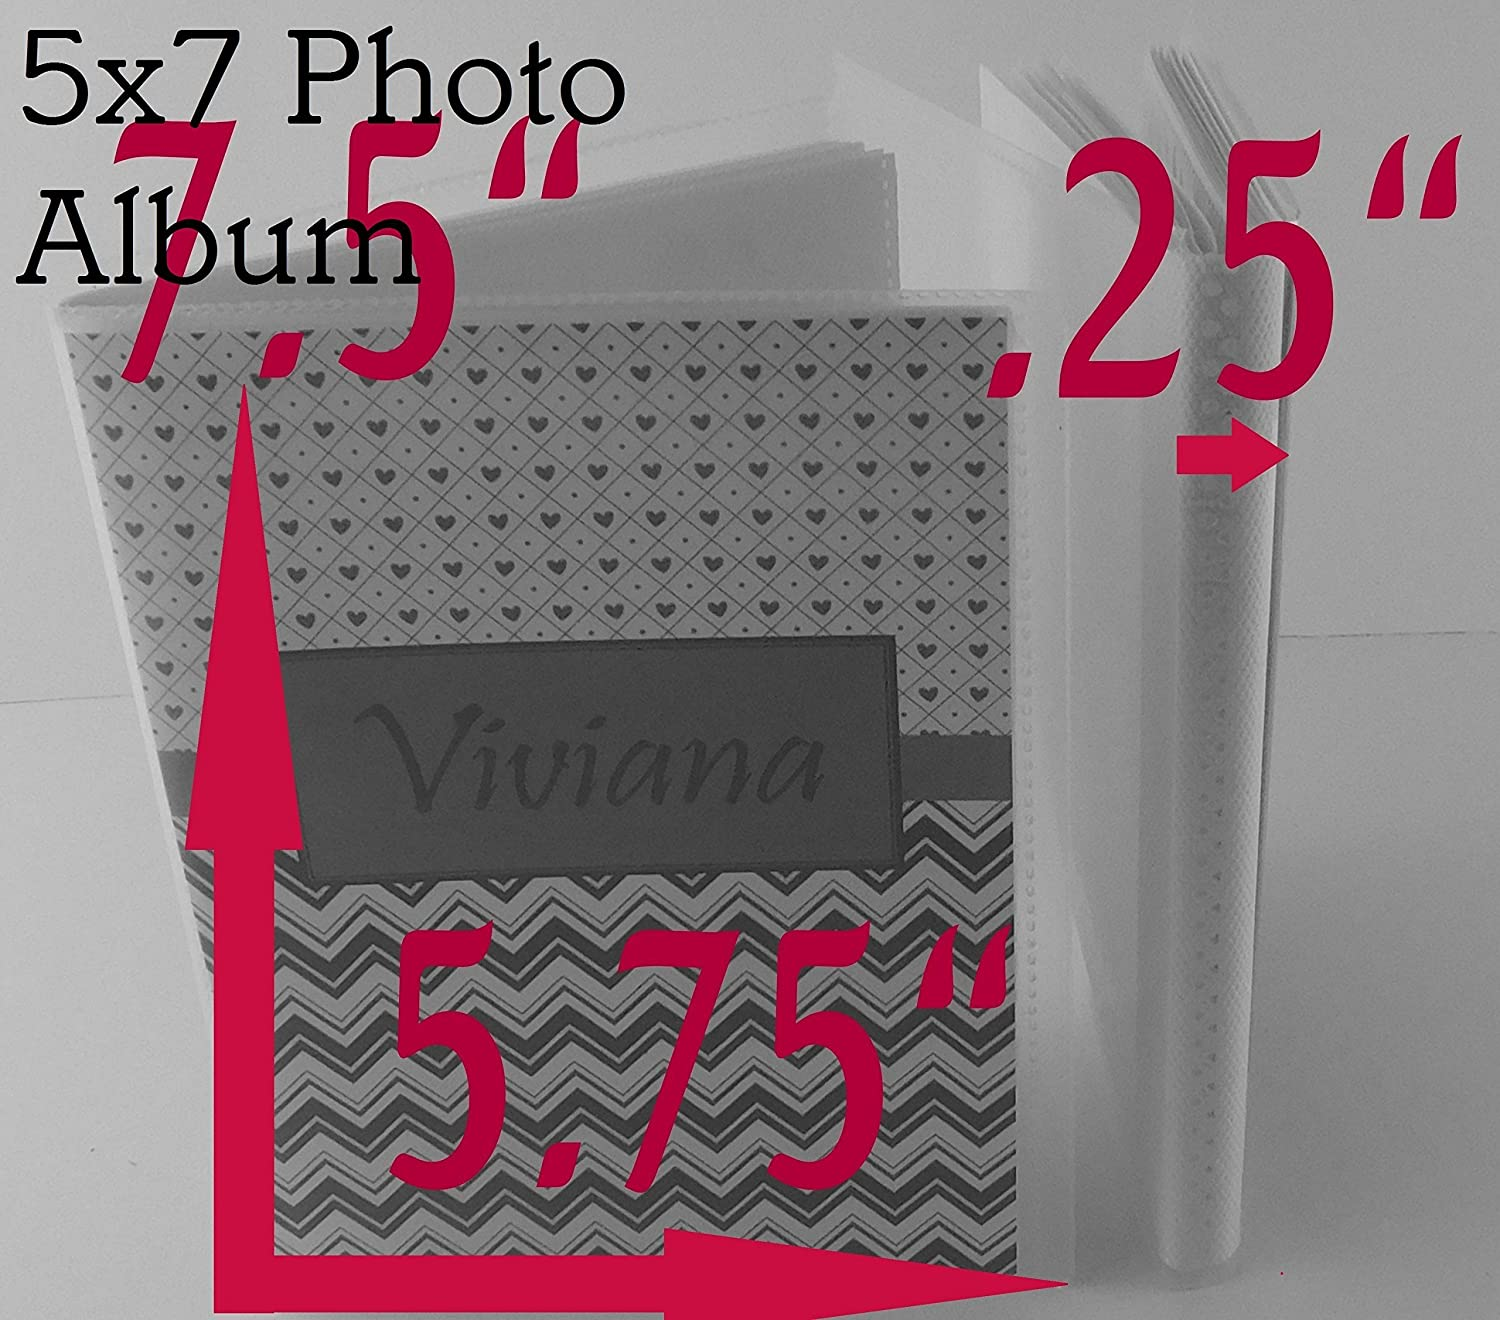 Graduation Photo Album IA#037 4x6 or 5x7 Pictures High School Graduate Gift Senior Class of 2020 highschool Personalized Graduation Gift MORE COLORS